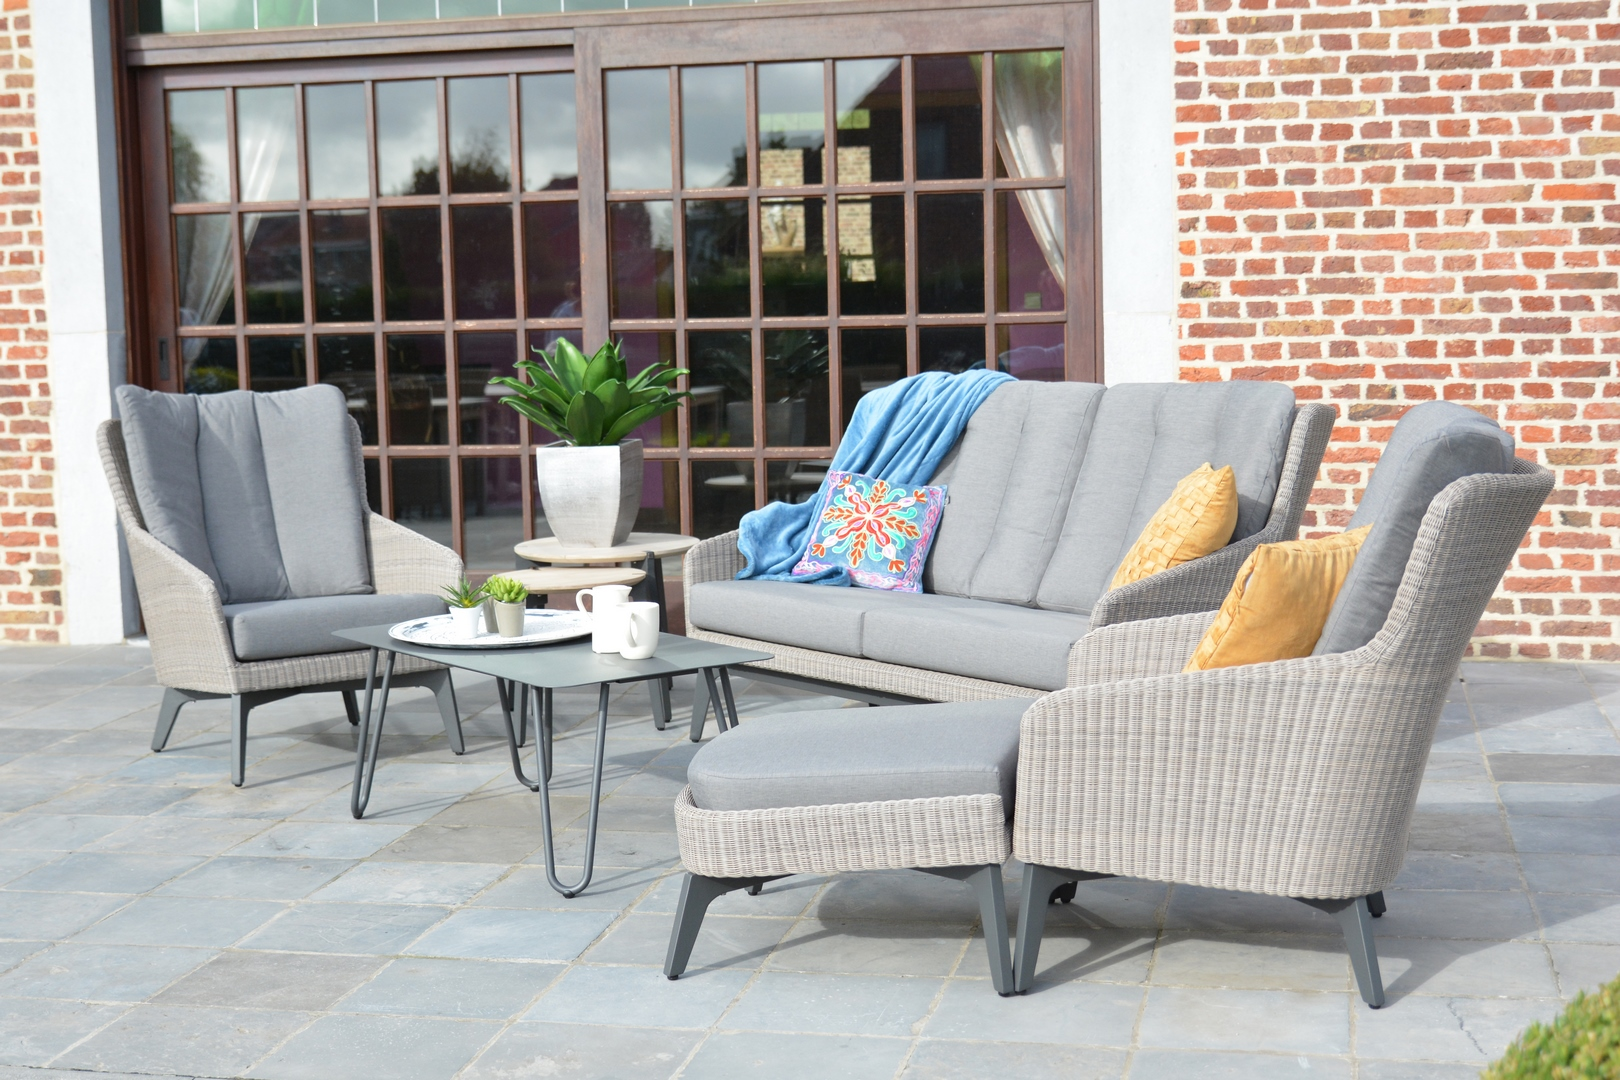 4 Seasons Outdoor Luxorl  Loungeset